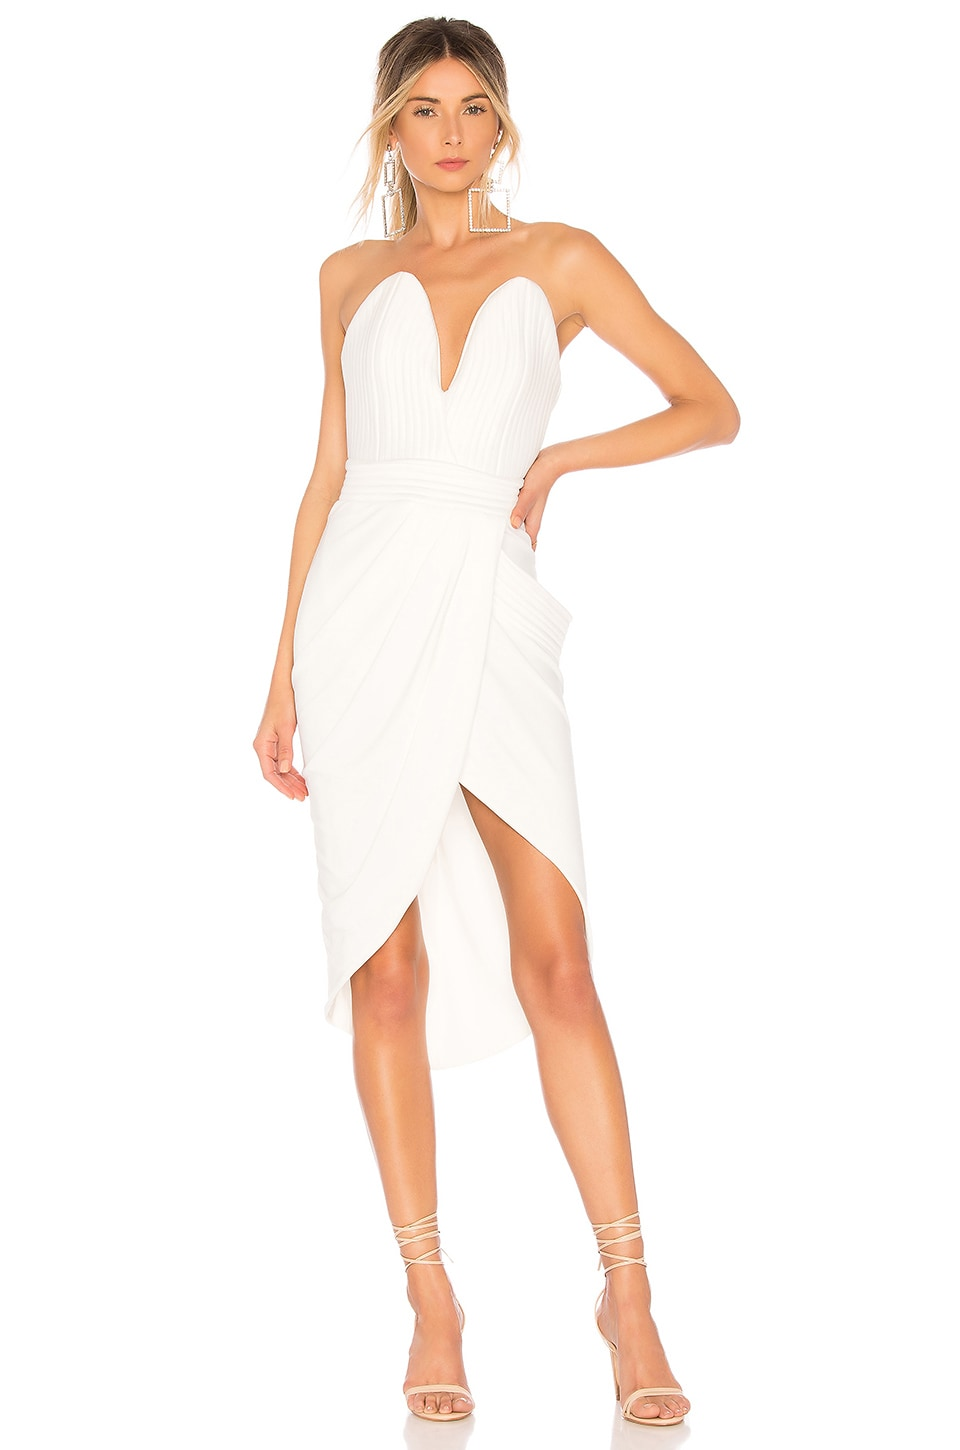 Zhivago Mad World Dress in White